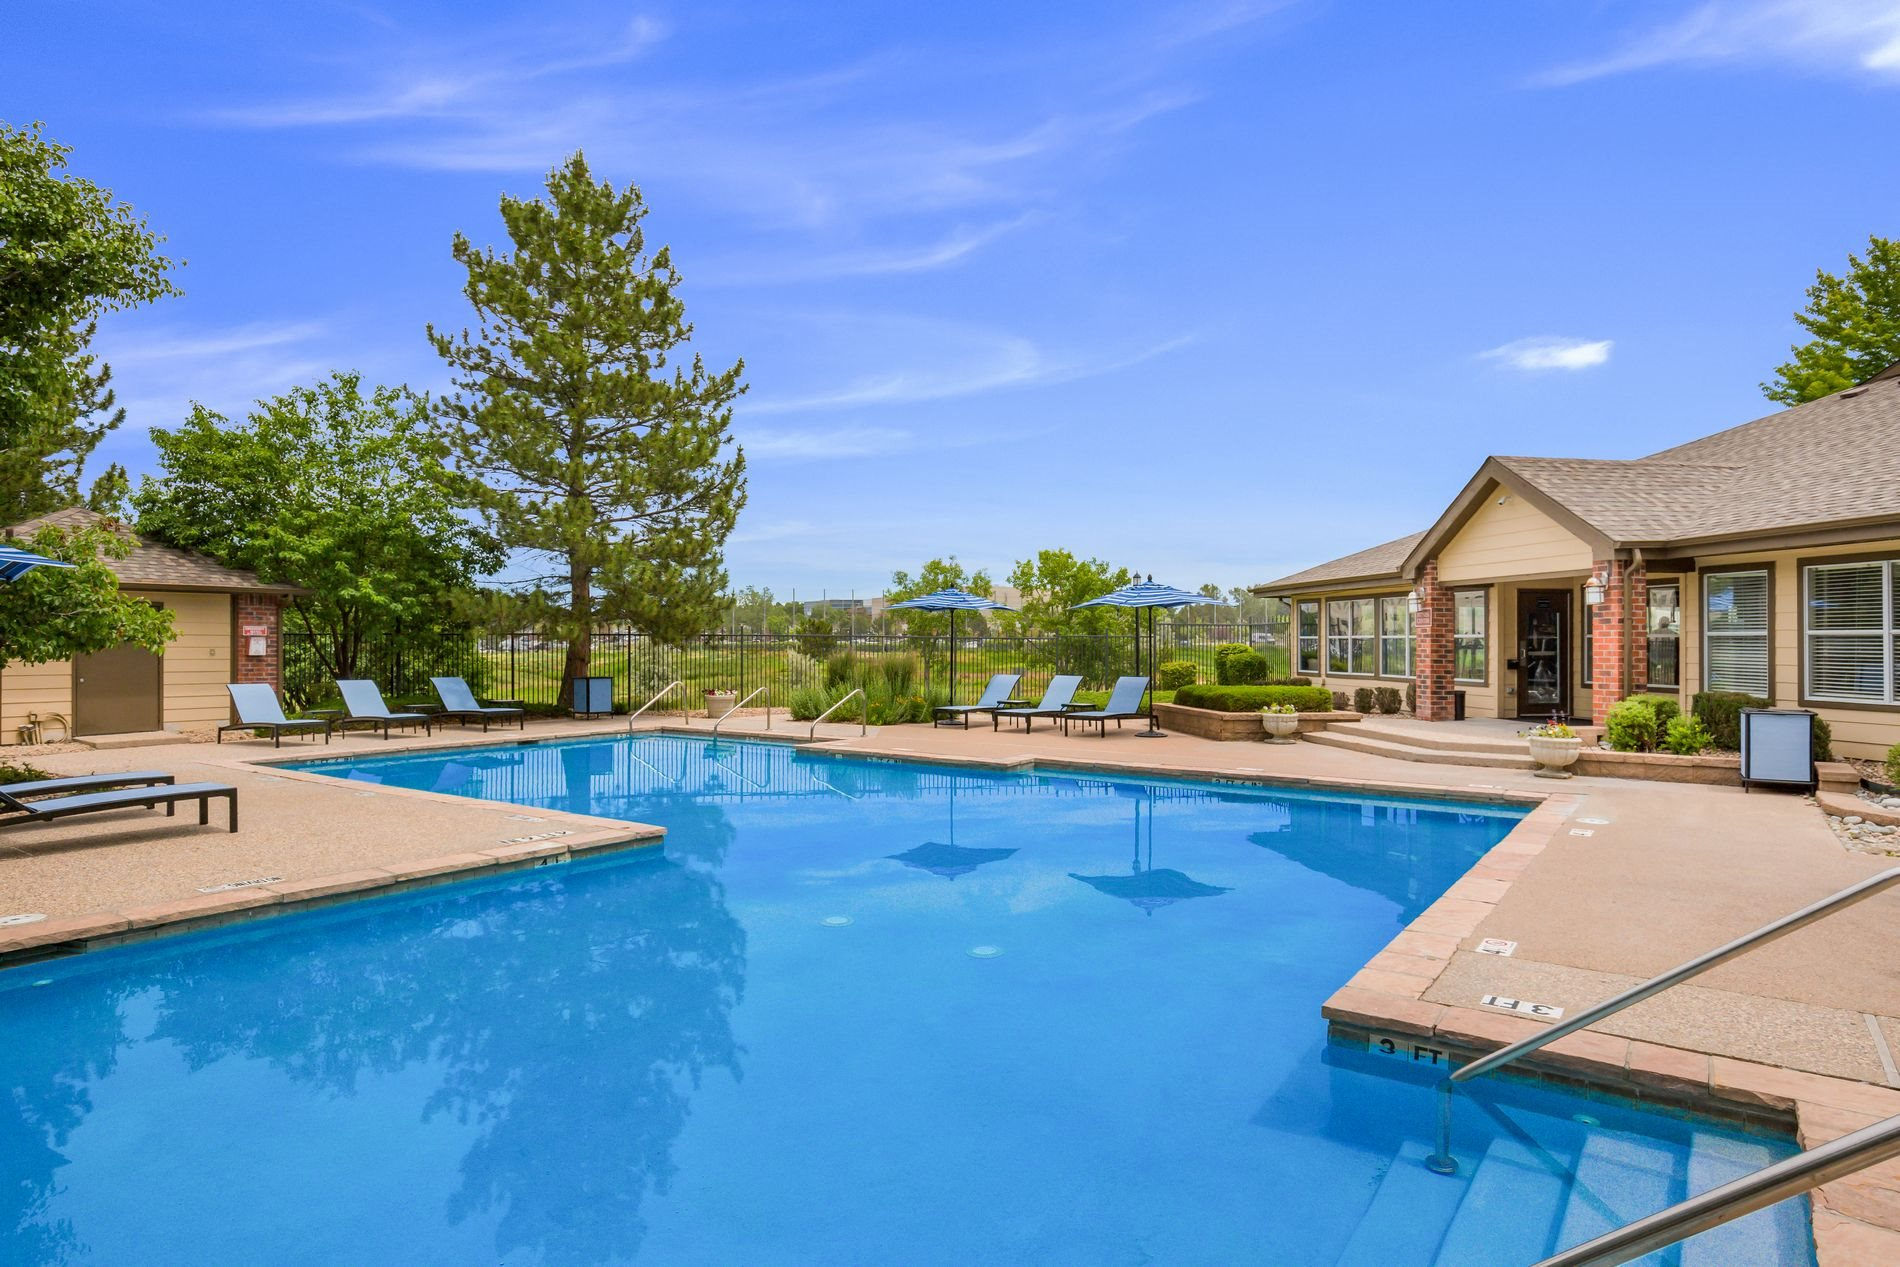 Photos and Video of Greensview in Aurora, CO